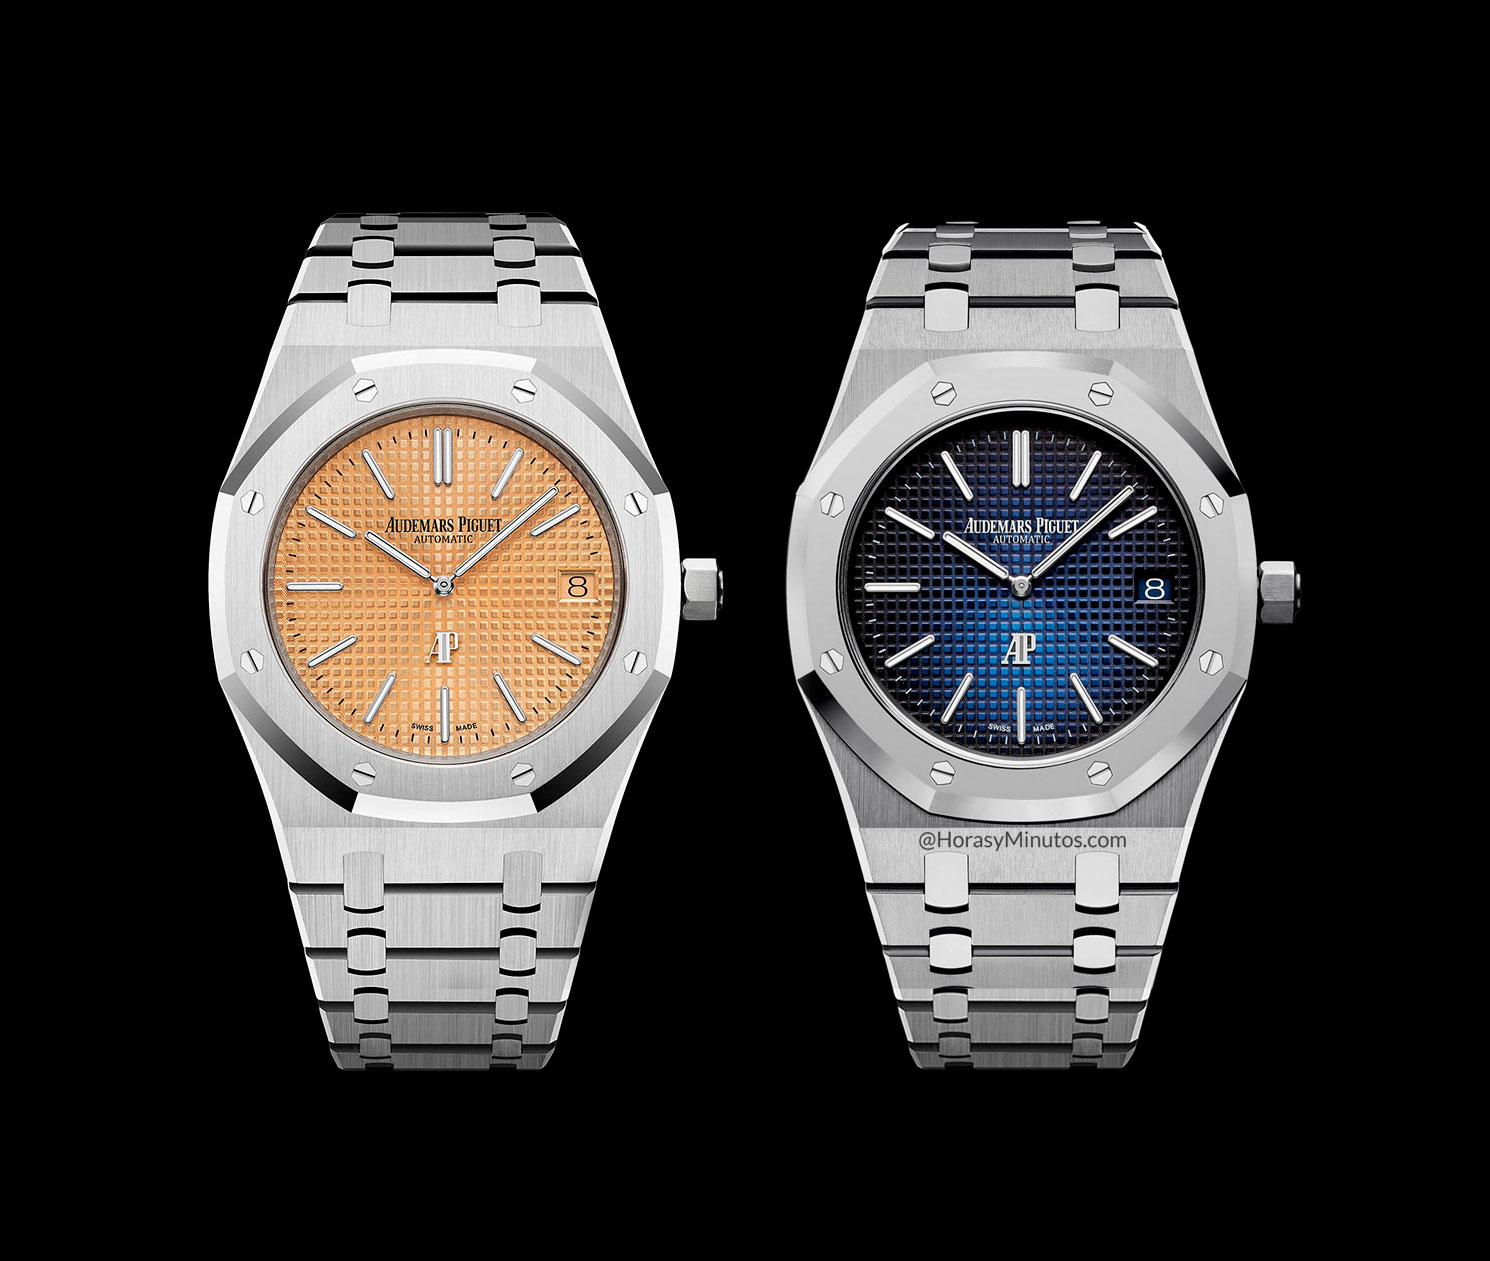 Los Royal Oak Extra Thin 15202 de 2018 y 2019